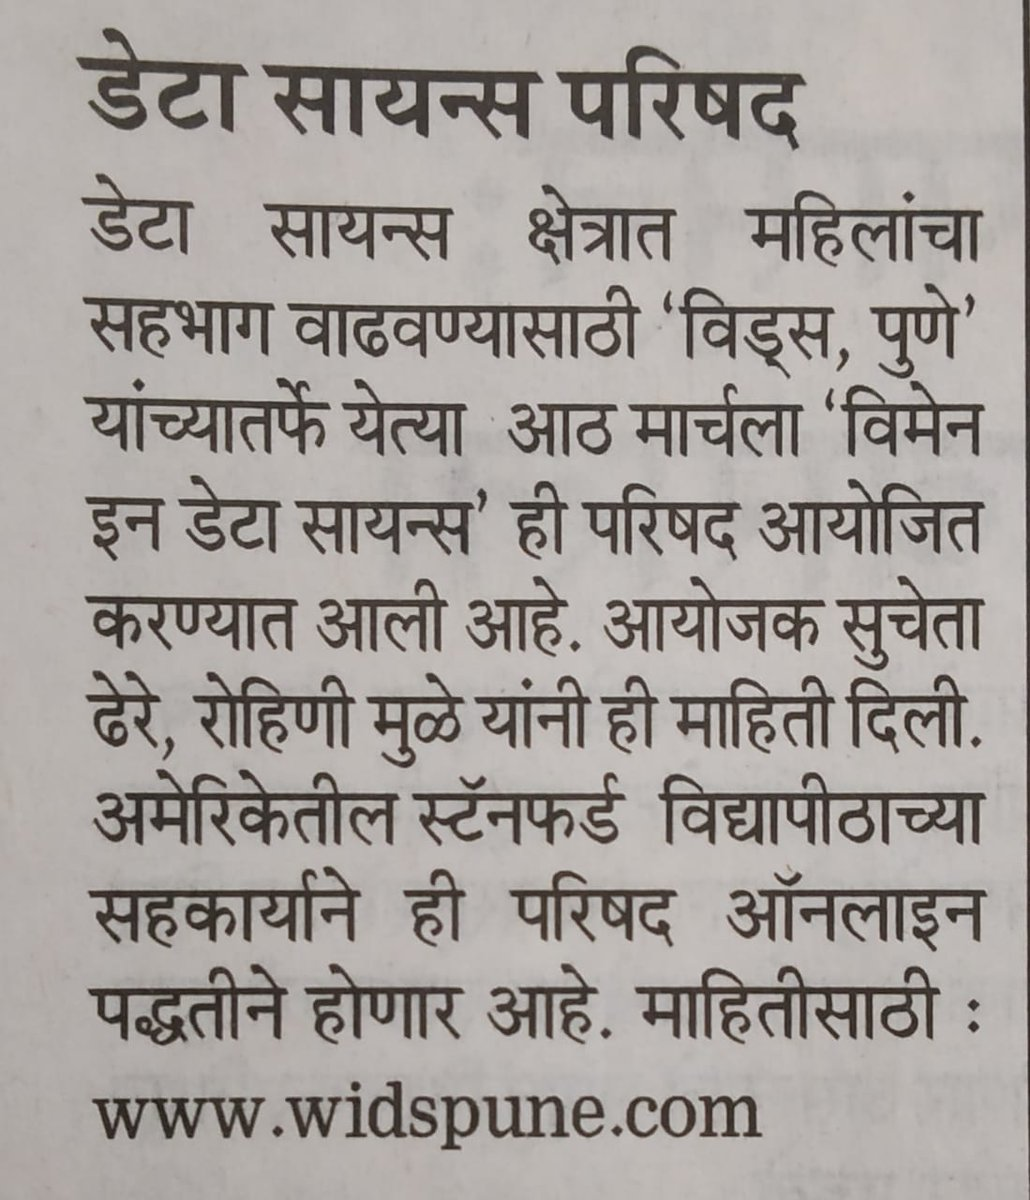 Happy to share that Maharashtra Times covered our story and supported the cause! Lets celebrate International Women's Day together! @Matapune #maharashtratimes #WomenInScience #DataScience #data #MachineLearning #WiDS2021